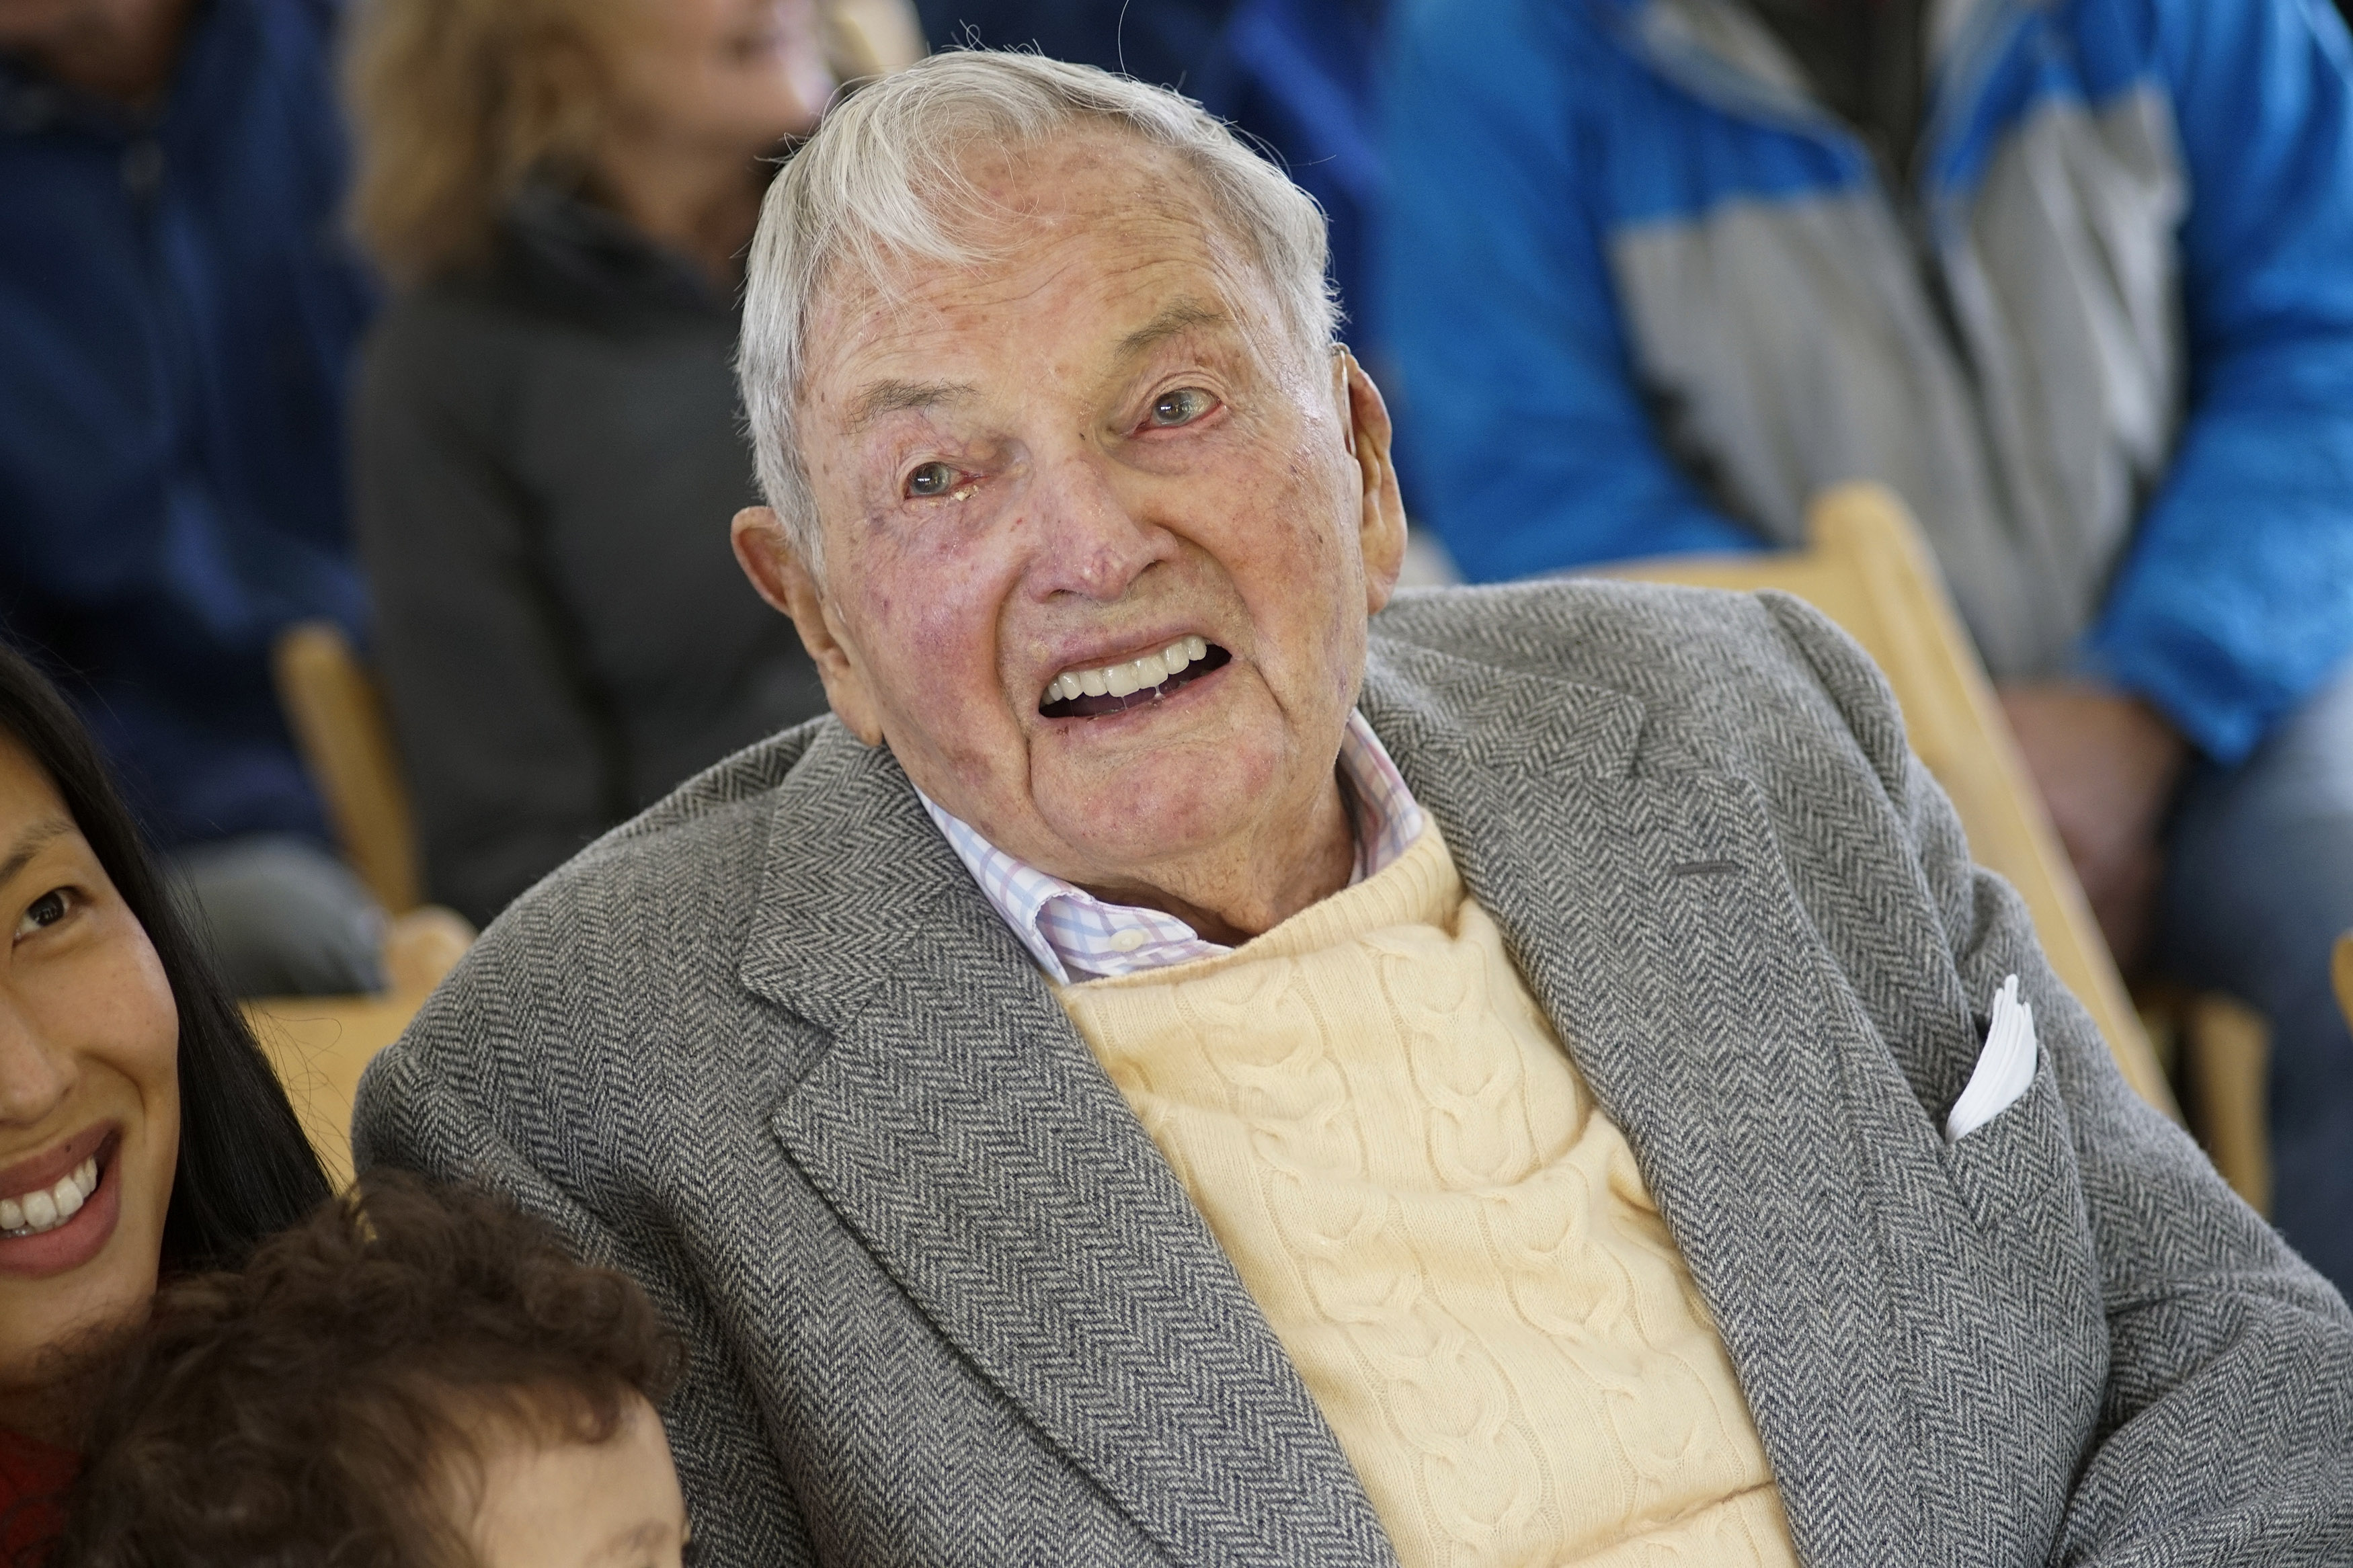 Rockefeller makes rare appearance ahead of 100th birthday